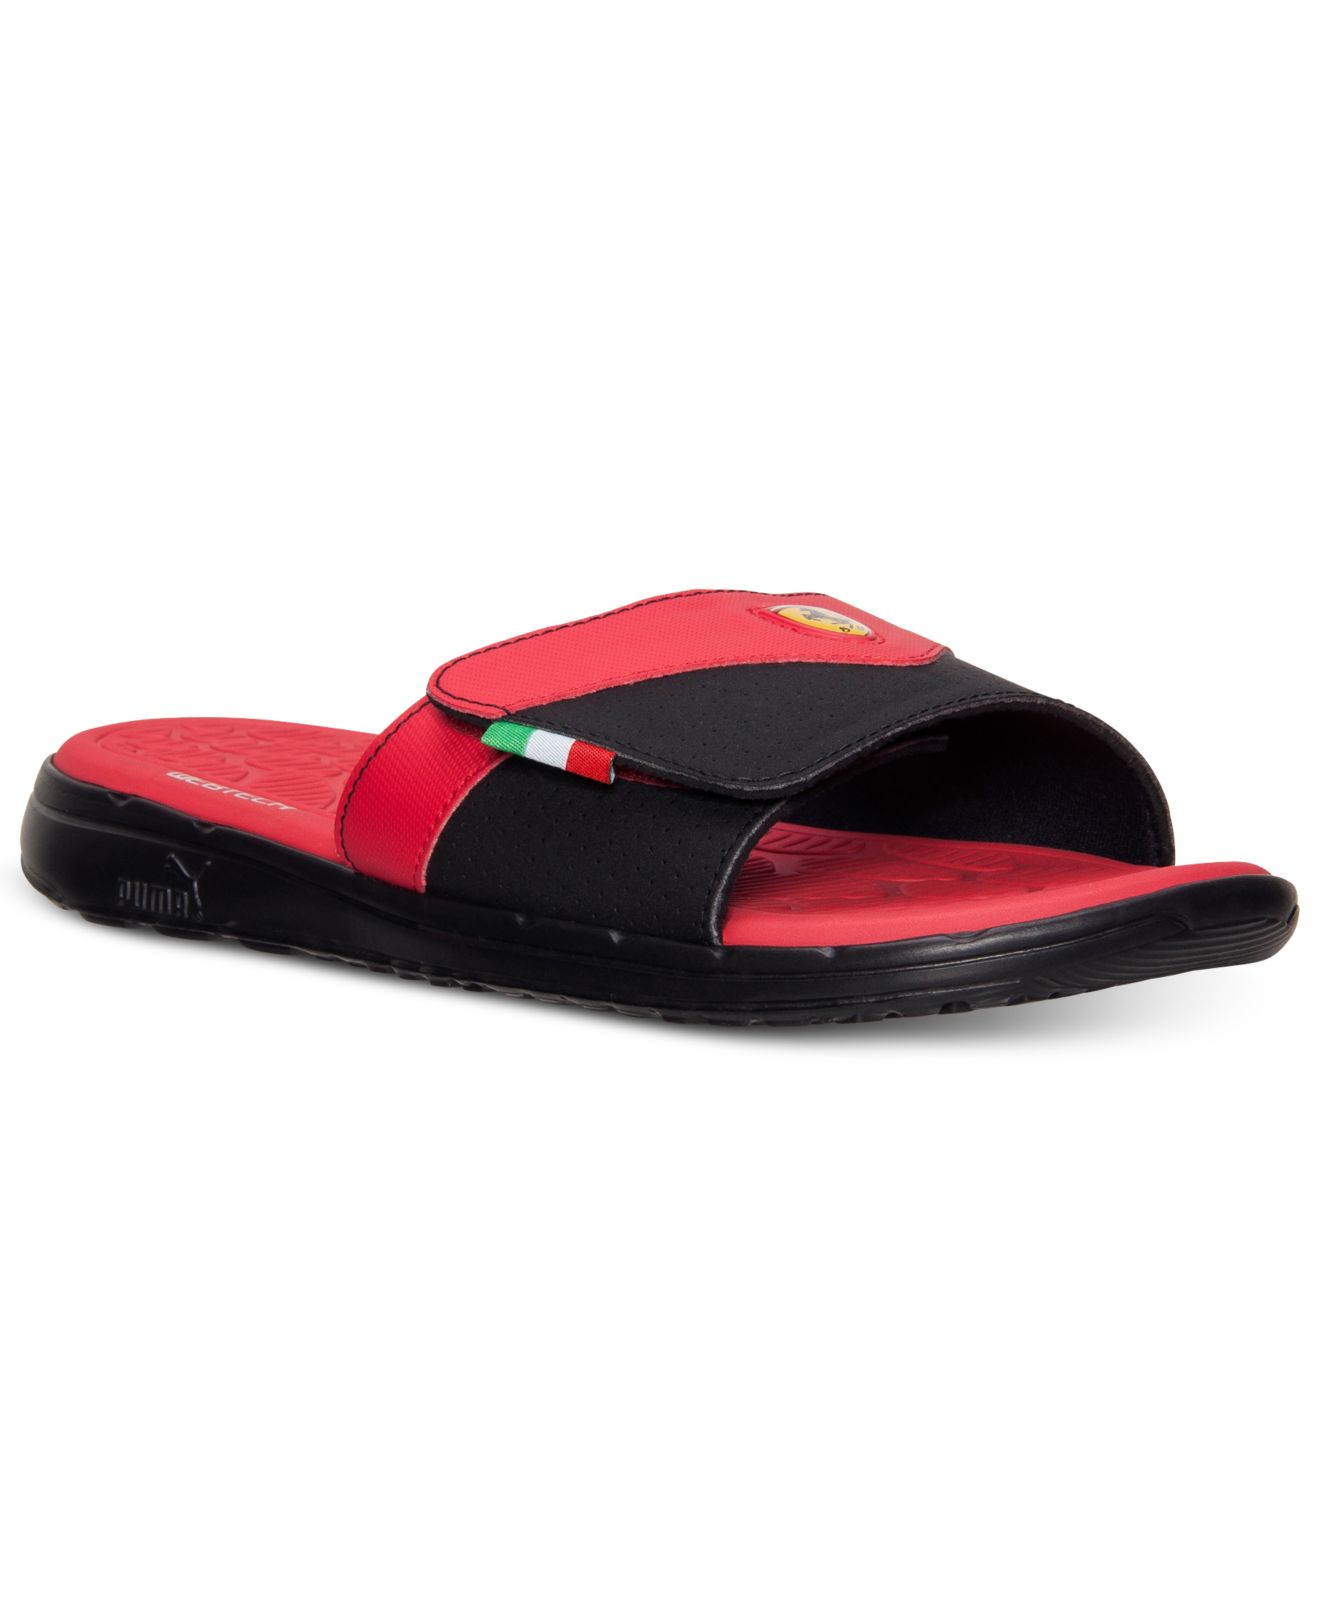 Lyst - Puma Men'S Ferrari Slide Sandals From Finish Line ...